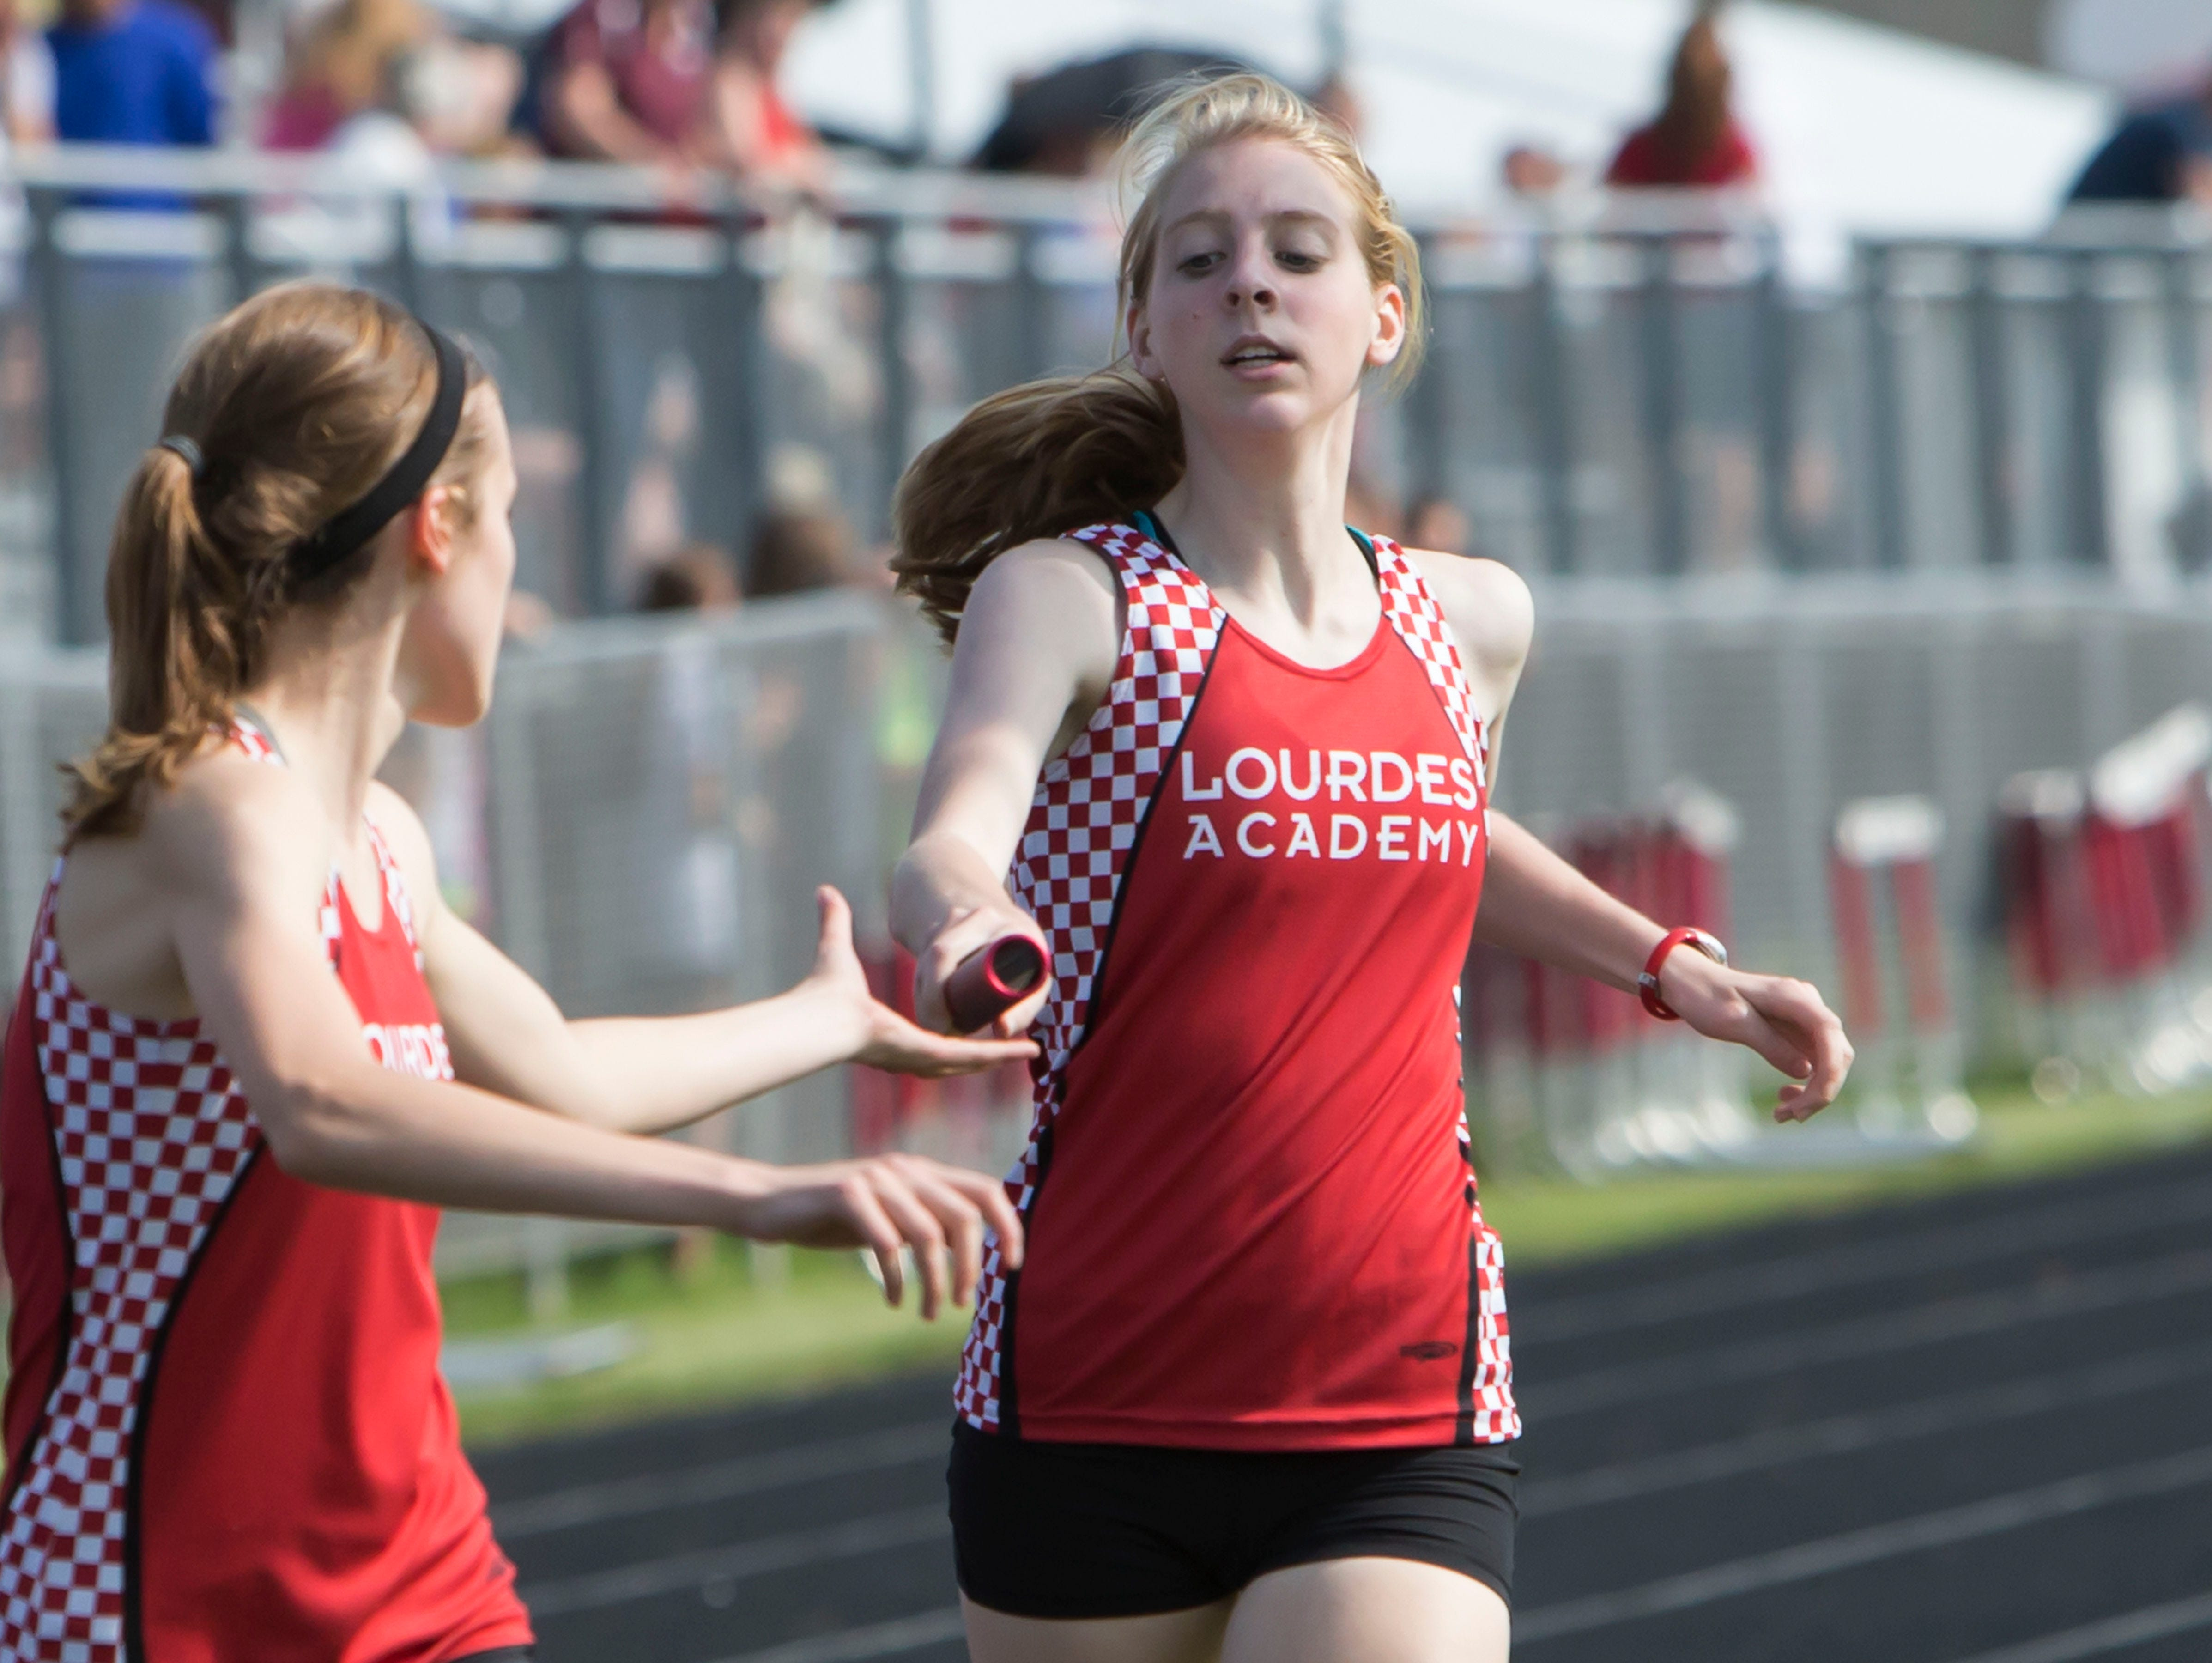 Lourdes Academy's Nora Keller passes the baton to Emily Foley during the 3,200-meter relay at the Princeton sectional on Friday.